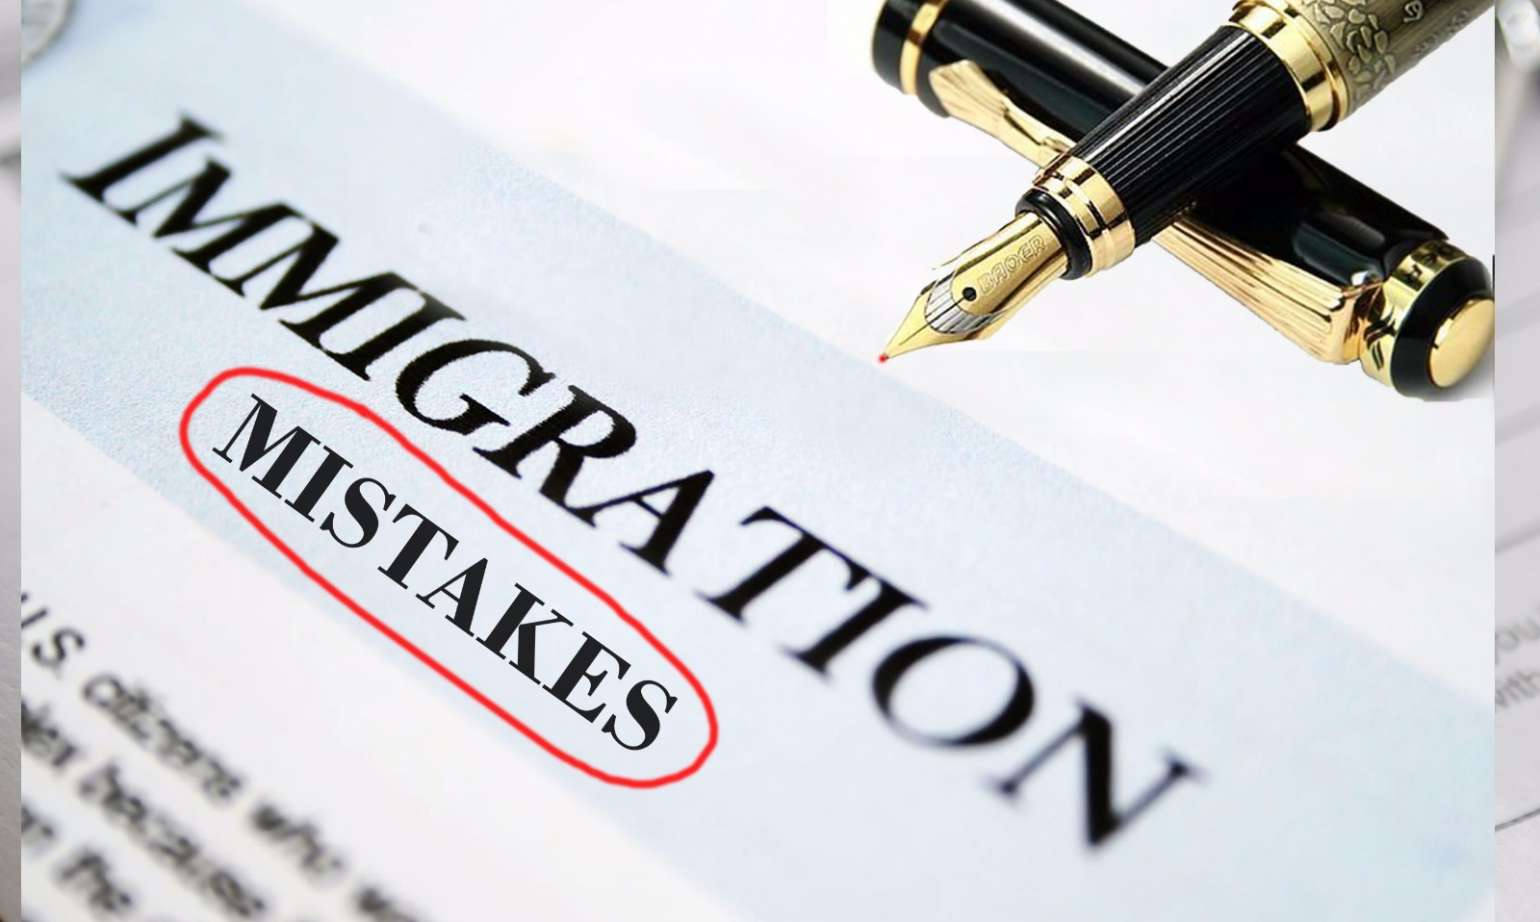 Some mistakes can get your visa denied, and the applicant should consider to avoid them.